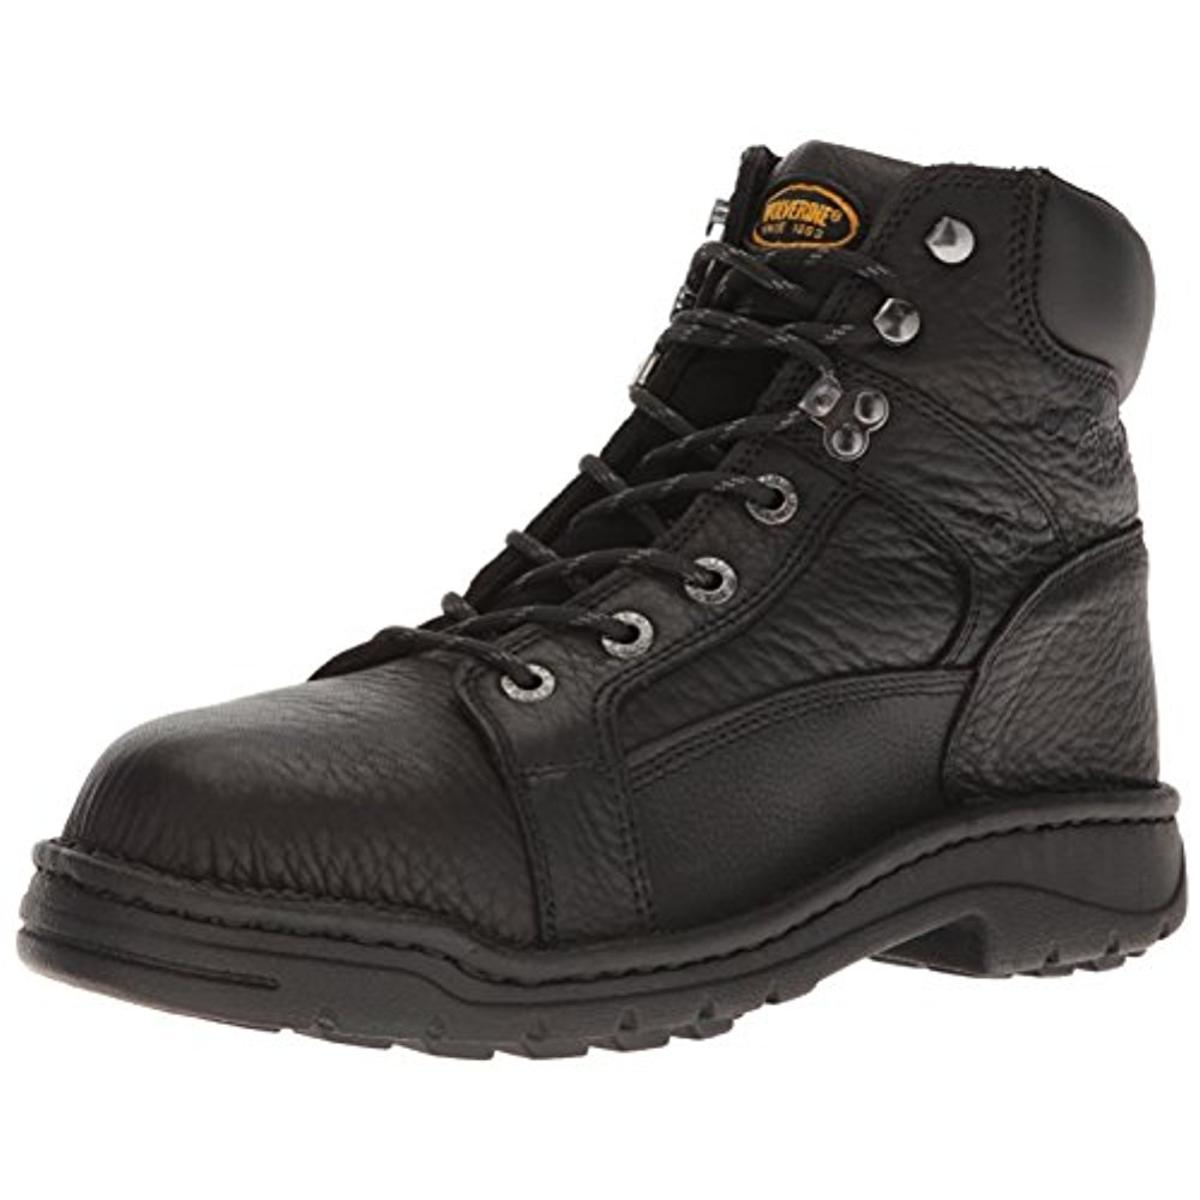 "Wolverine Mens Raider 6"" Leather Contour Welt Work Boots"